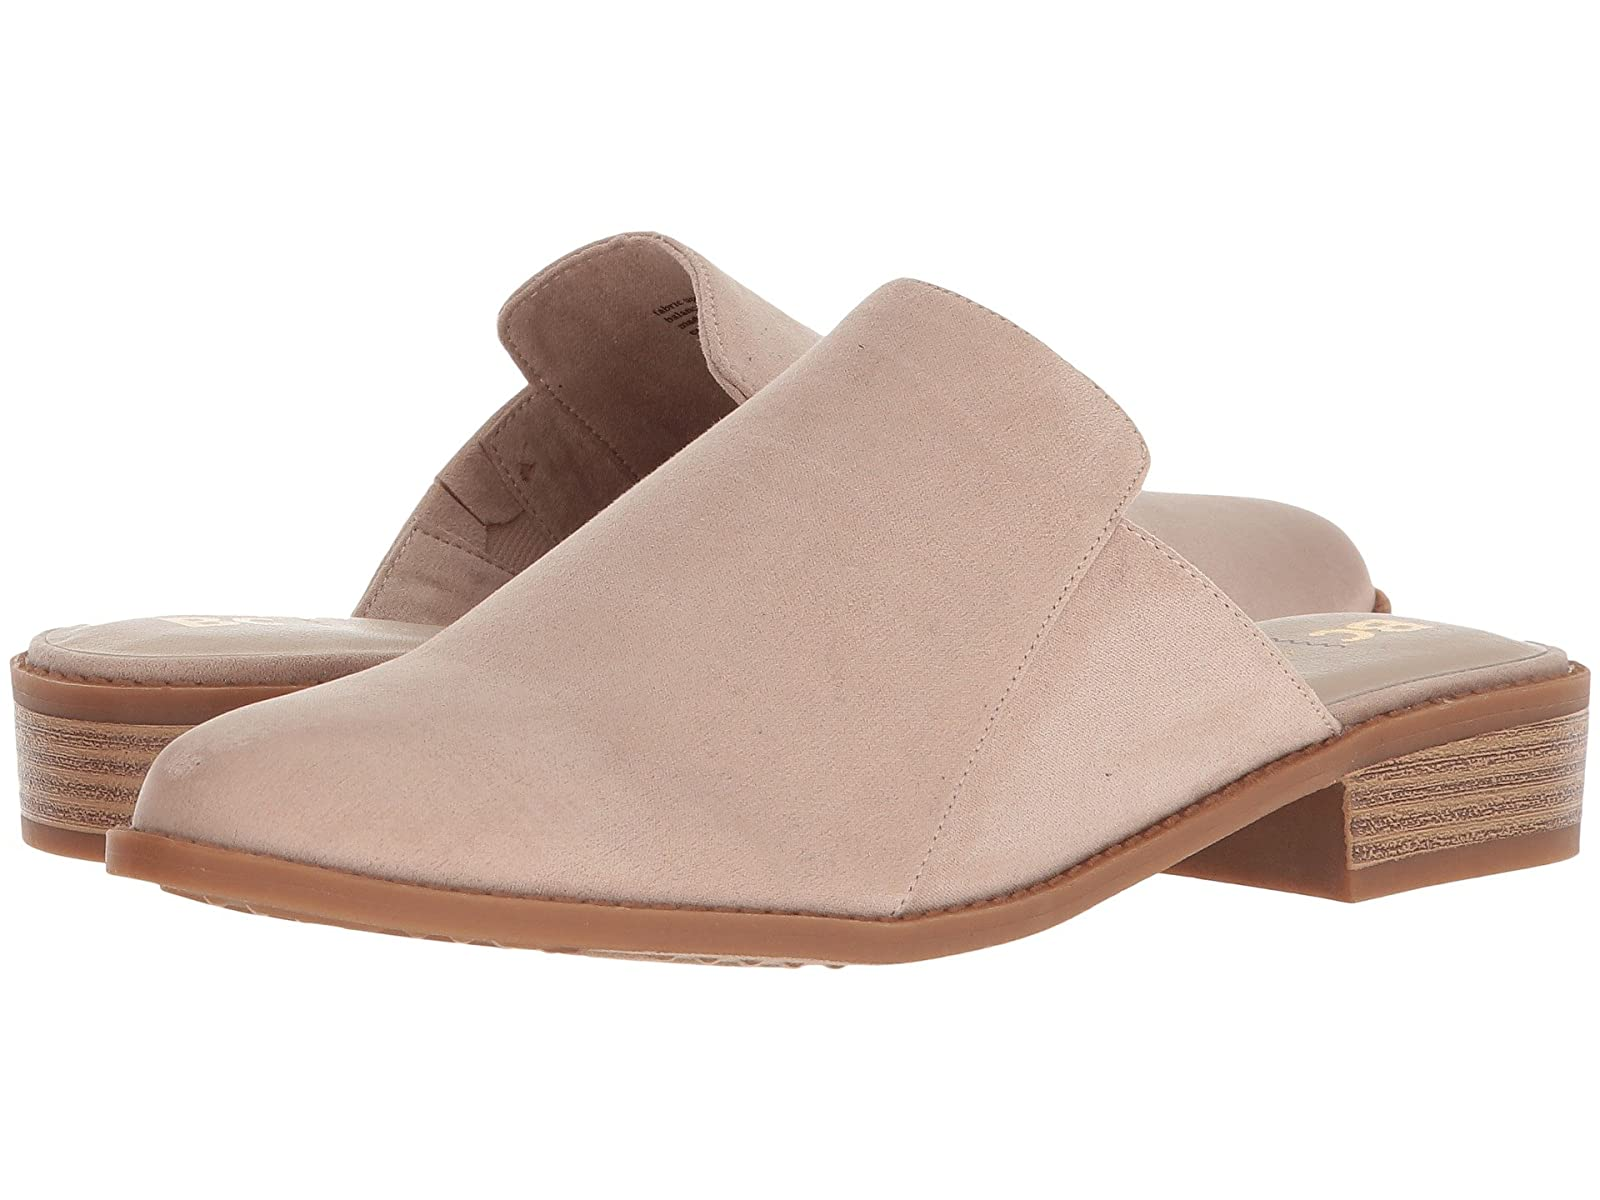 Seychelles BC Footwear by Seychelles Look At MeAtmospheric grades have affordable shoes